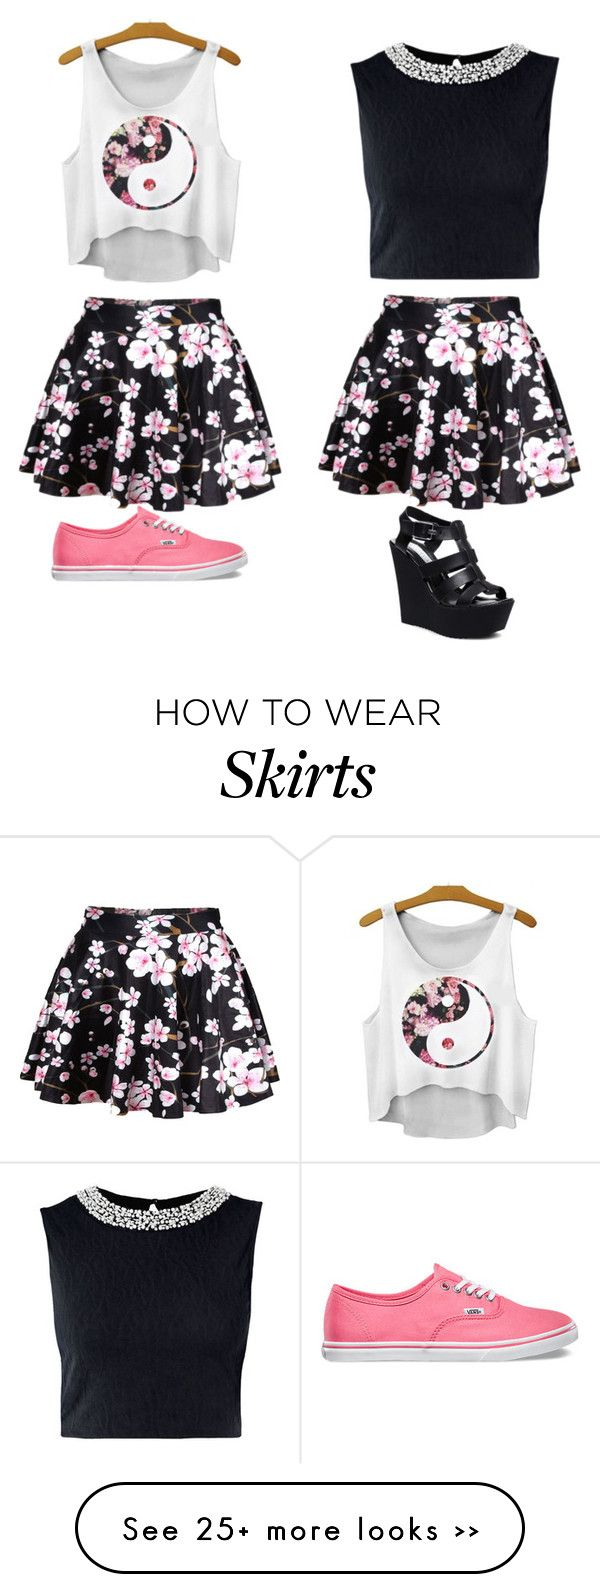 """""""Same skirt,different styles"""" by musicislife166 on Polyvore"""